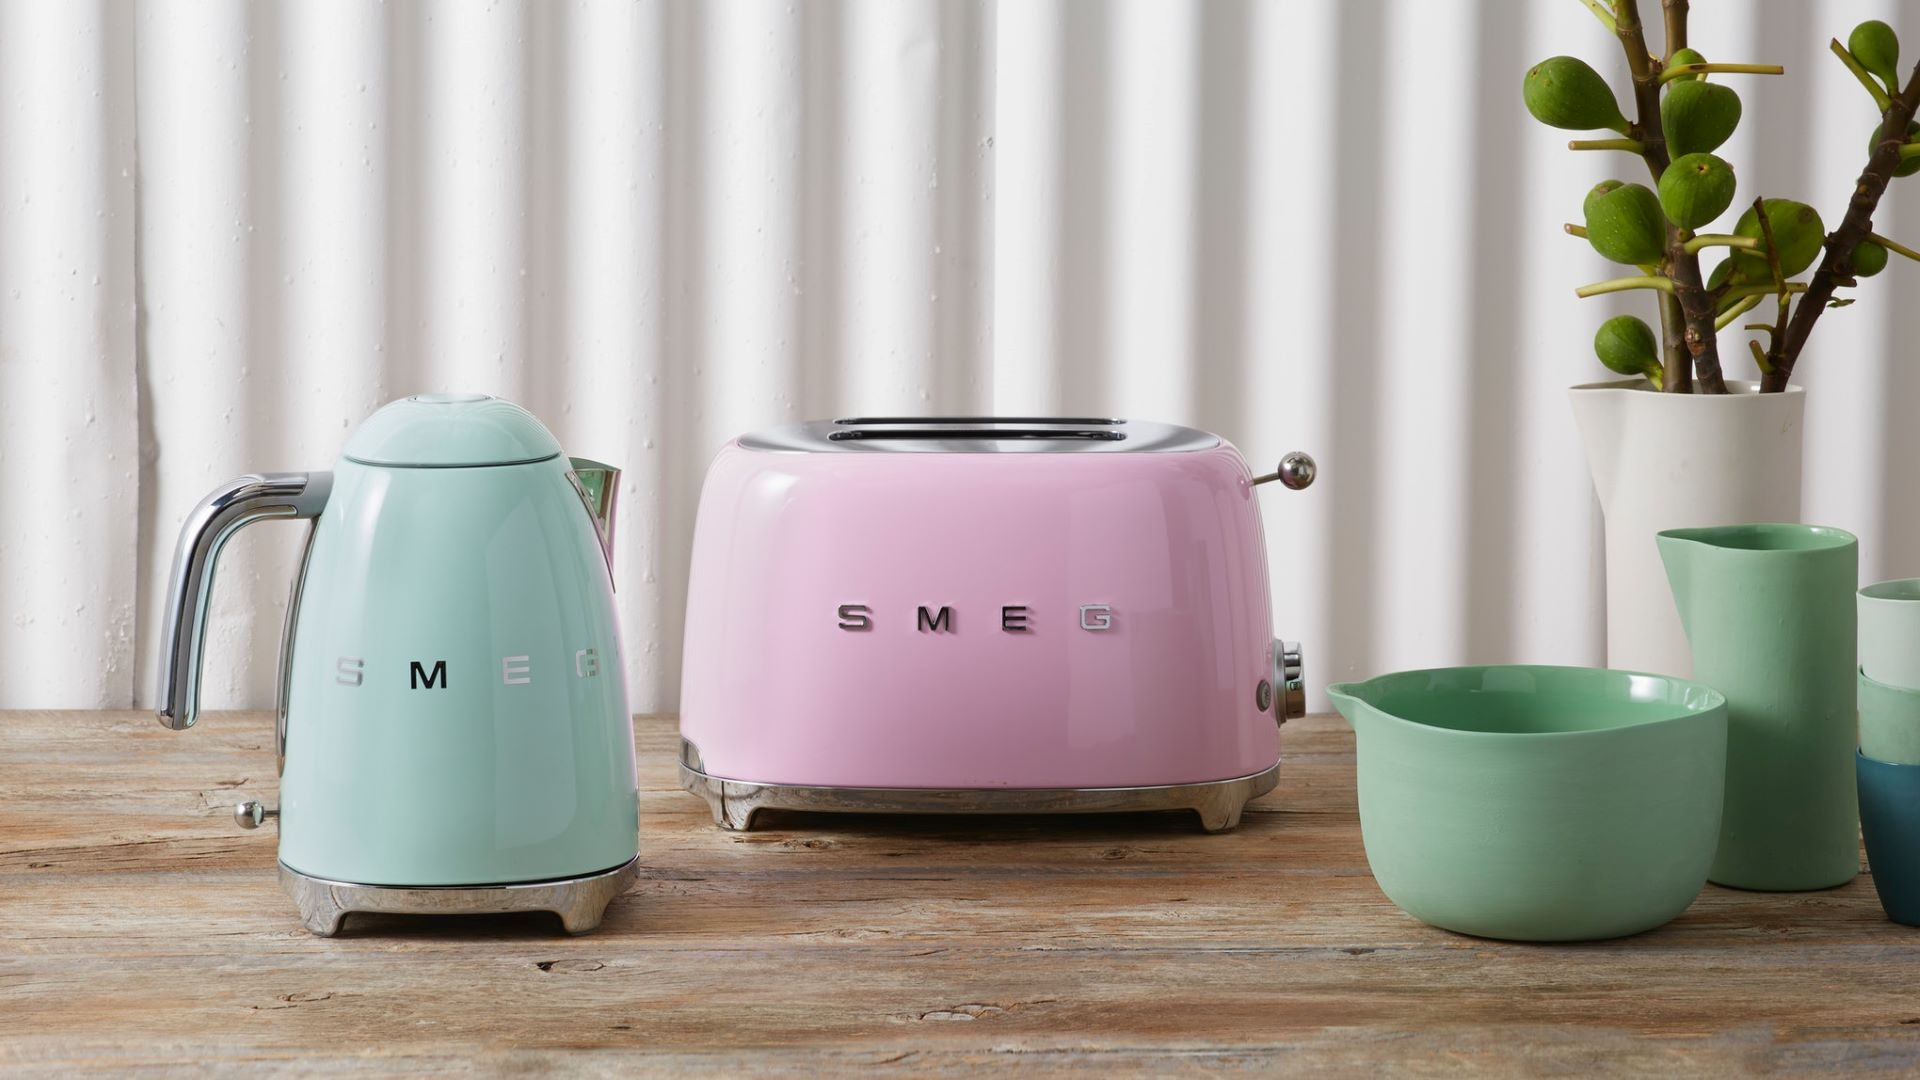 SMEG as one of the iconic retro appliances during the 60s